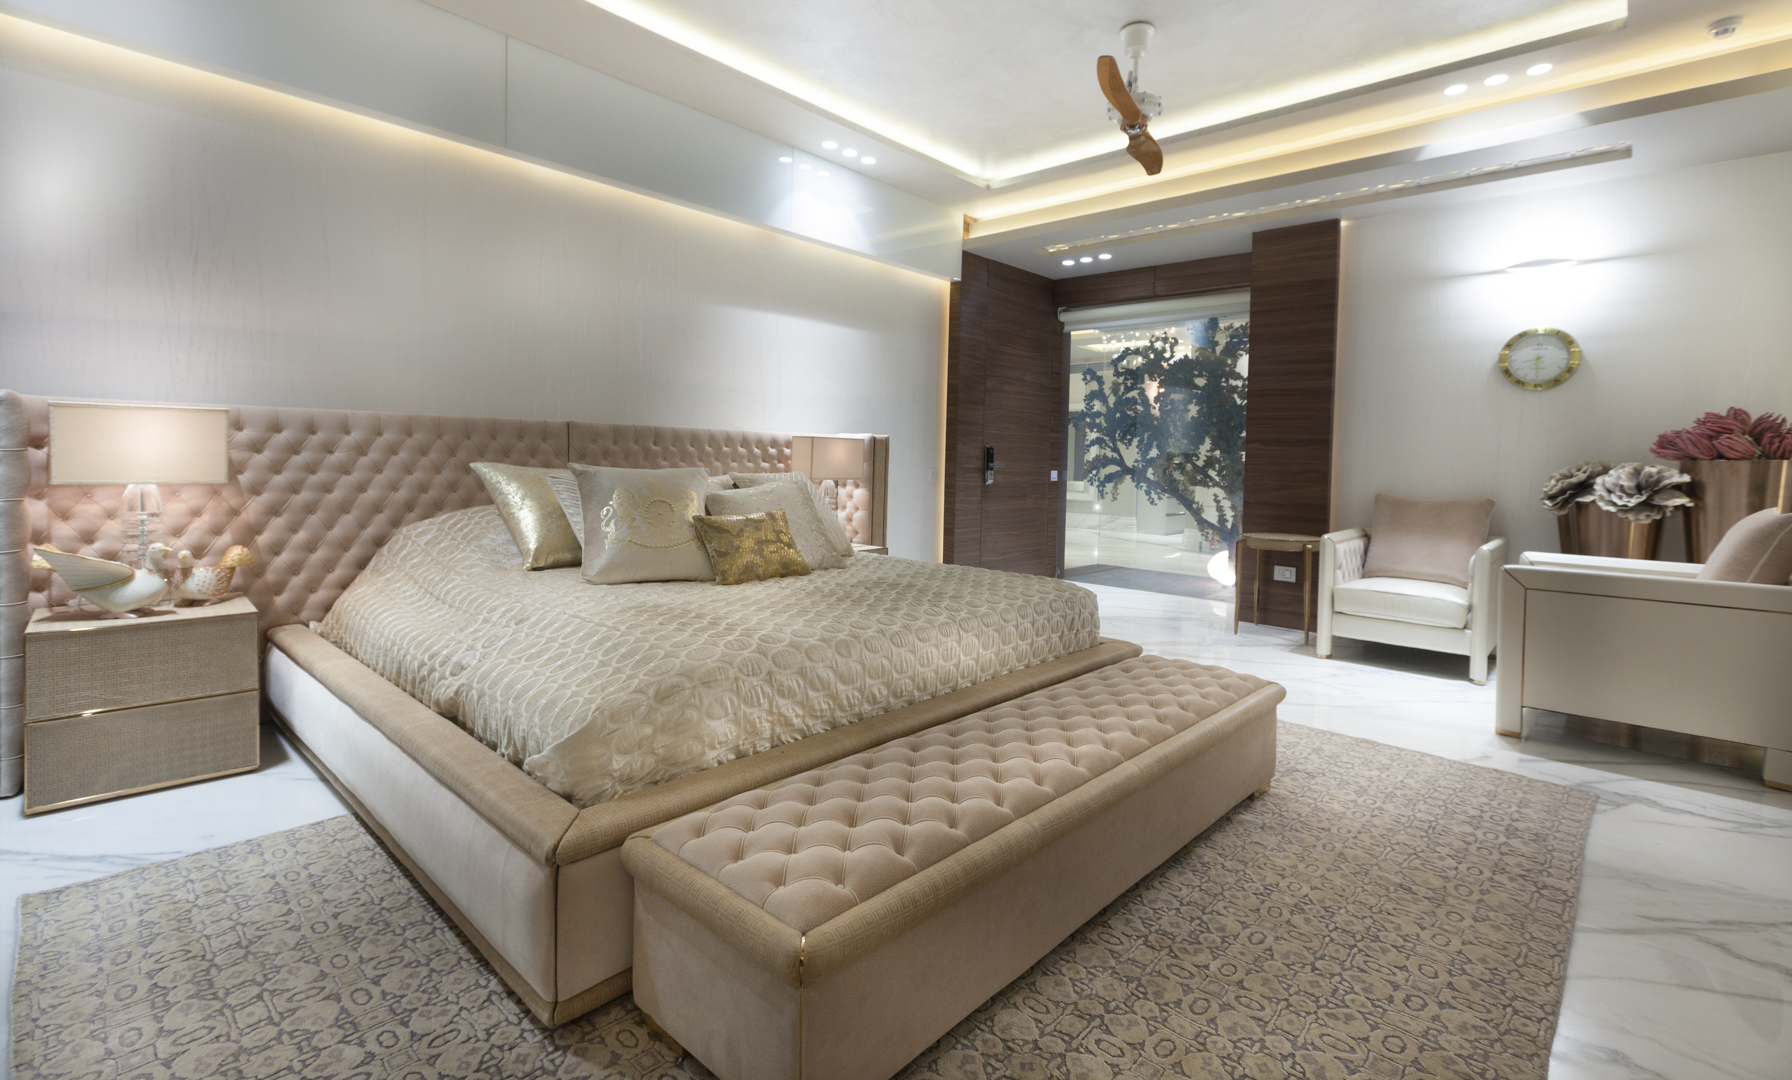 A Beautiful Bed Room Design by Essentia Environments. A Beautiful Bed Room Design by Essentia Environments   JACPL